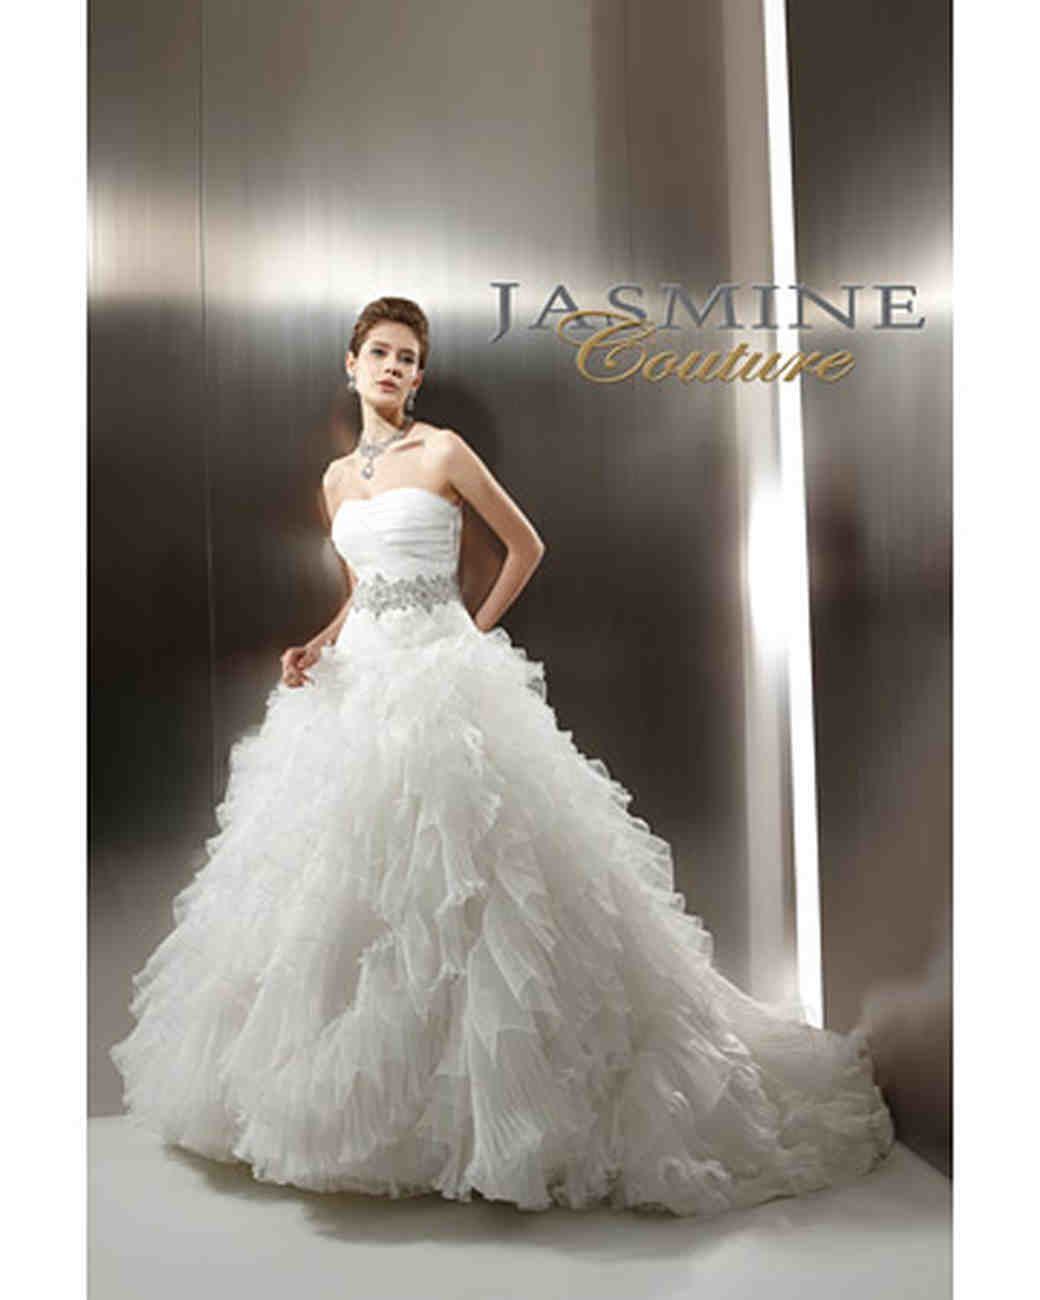 Jasmine Haute Couture Silk Wedding Dress